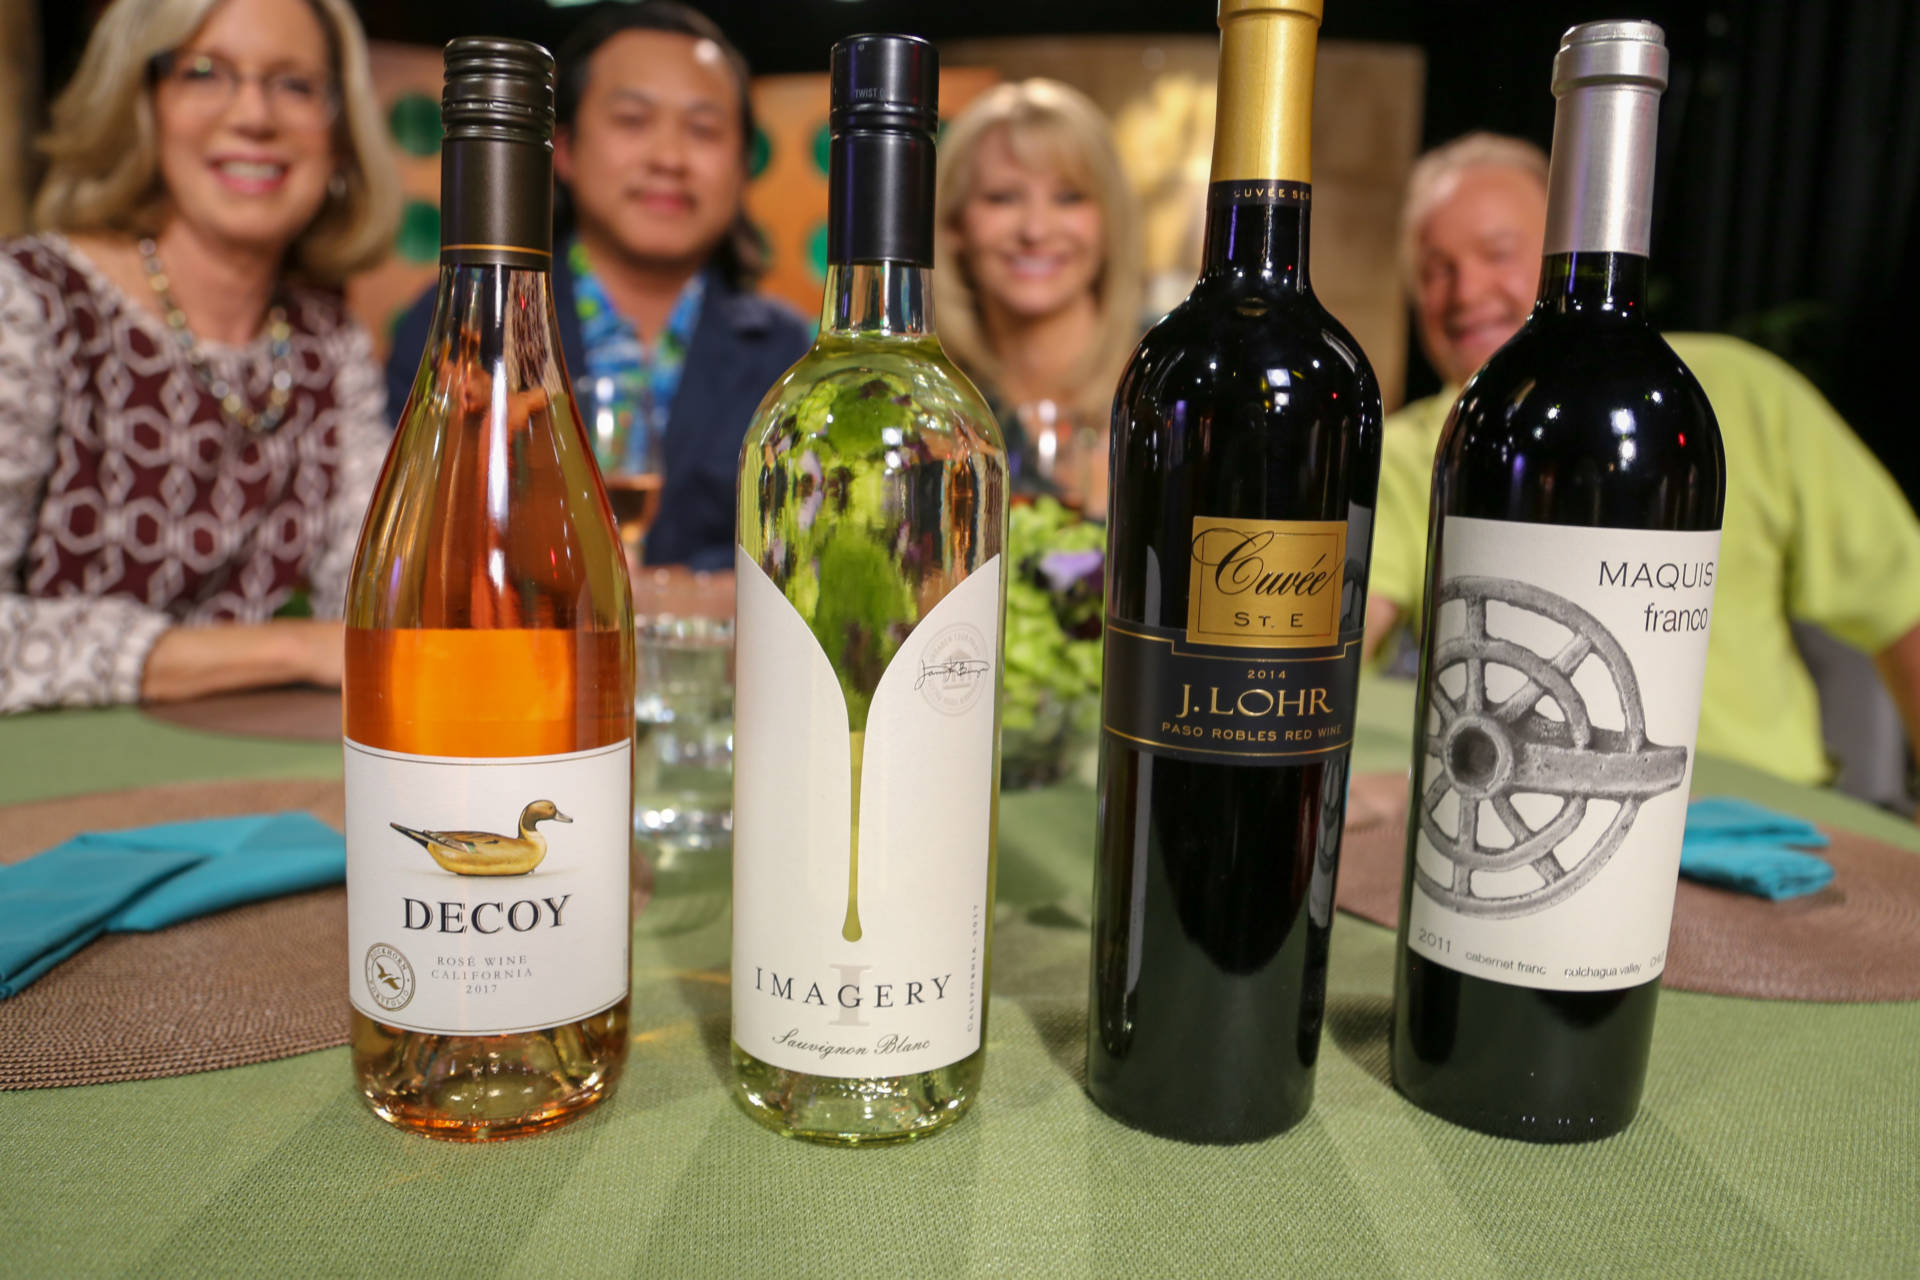 Wine that guests drank on the set of season 13 episode 15.